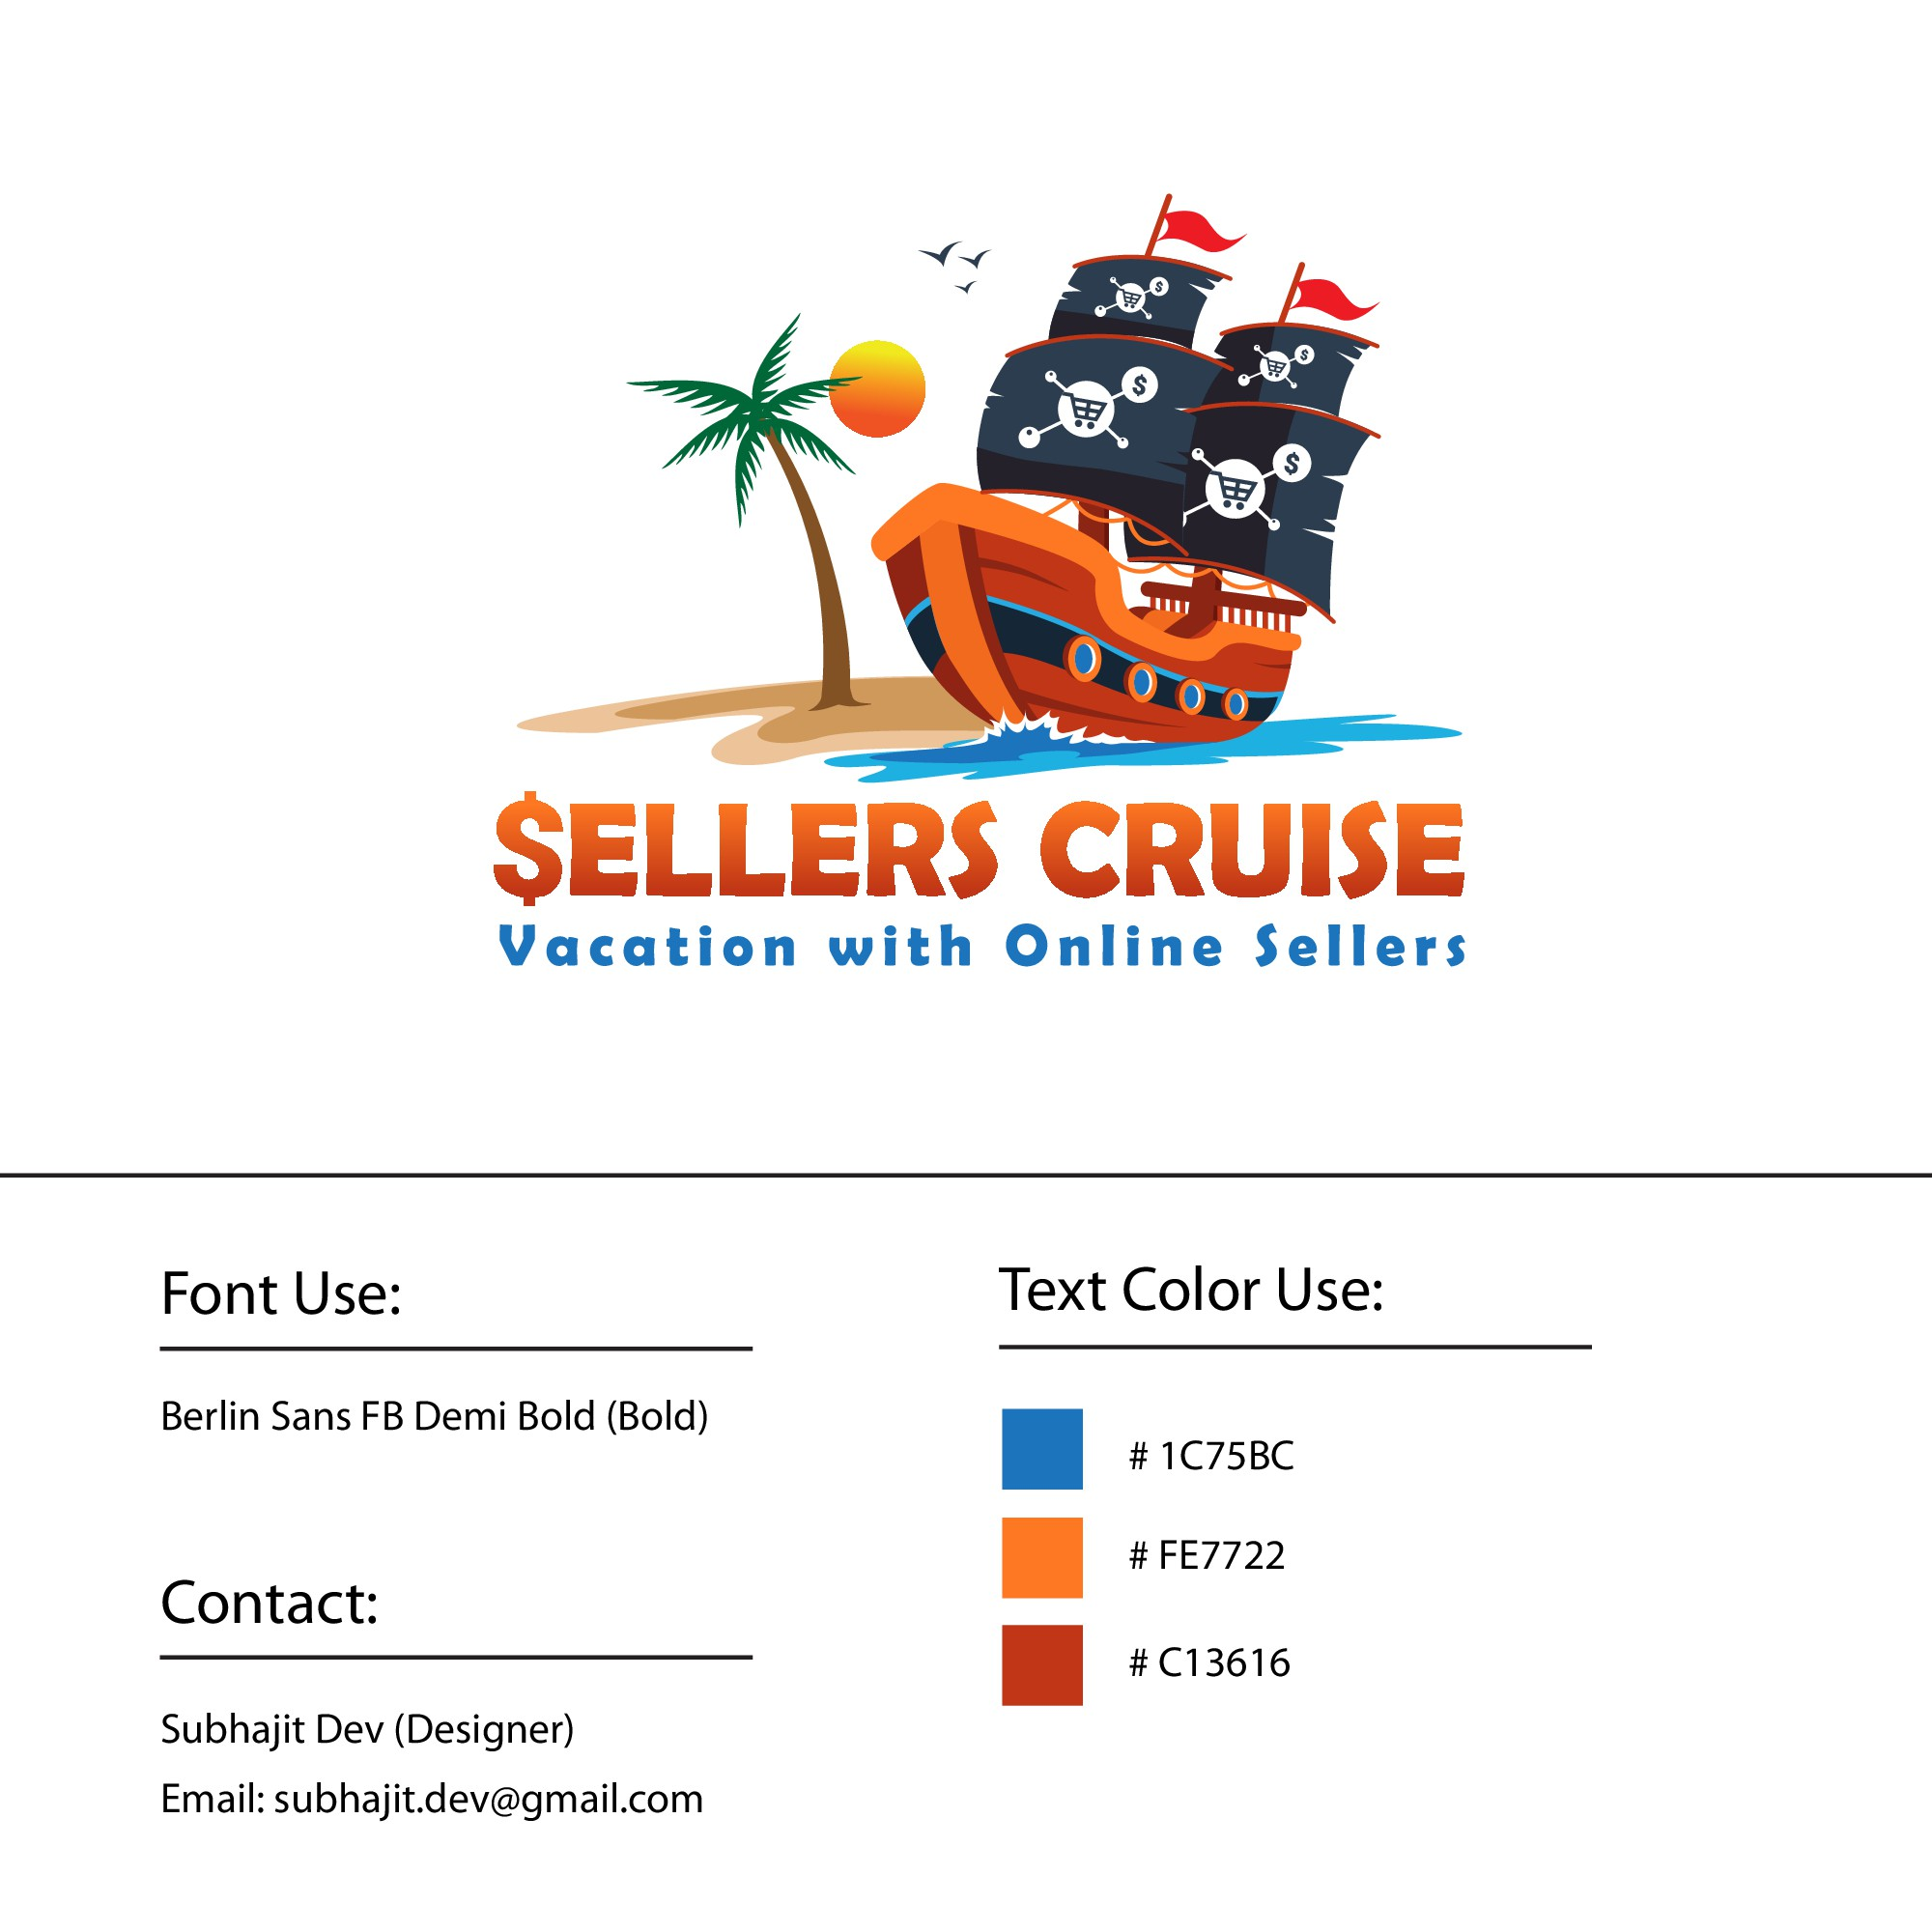 Design a logo for a cruise/vacation for online sellers